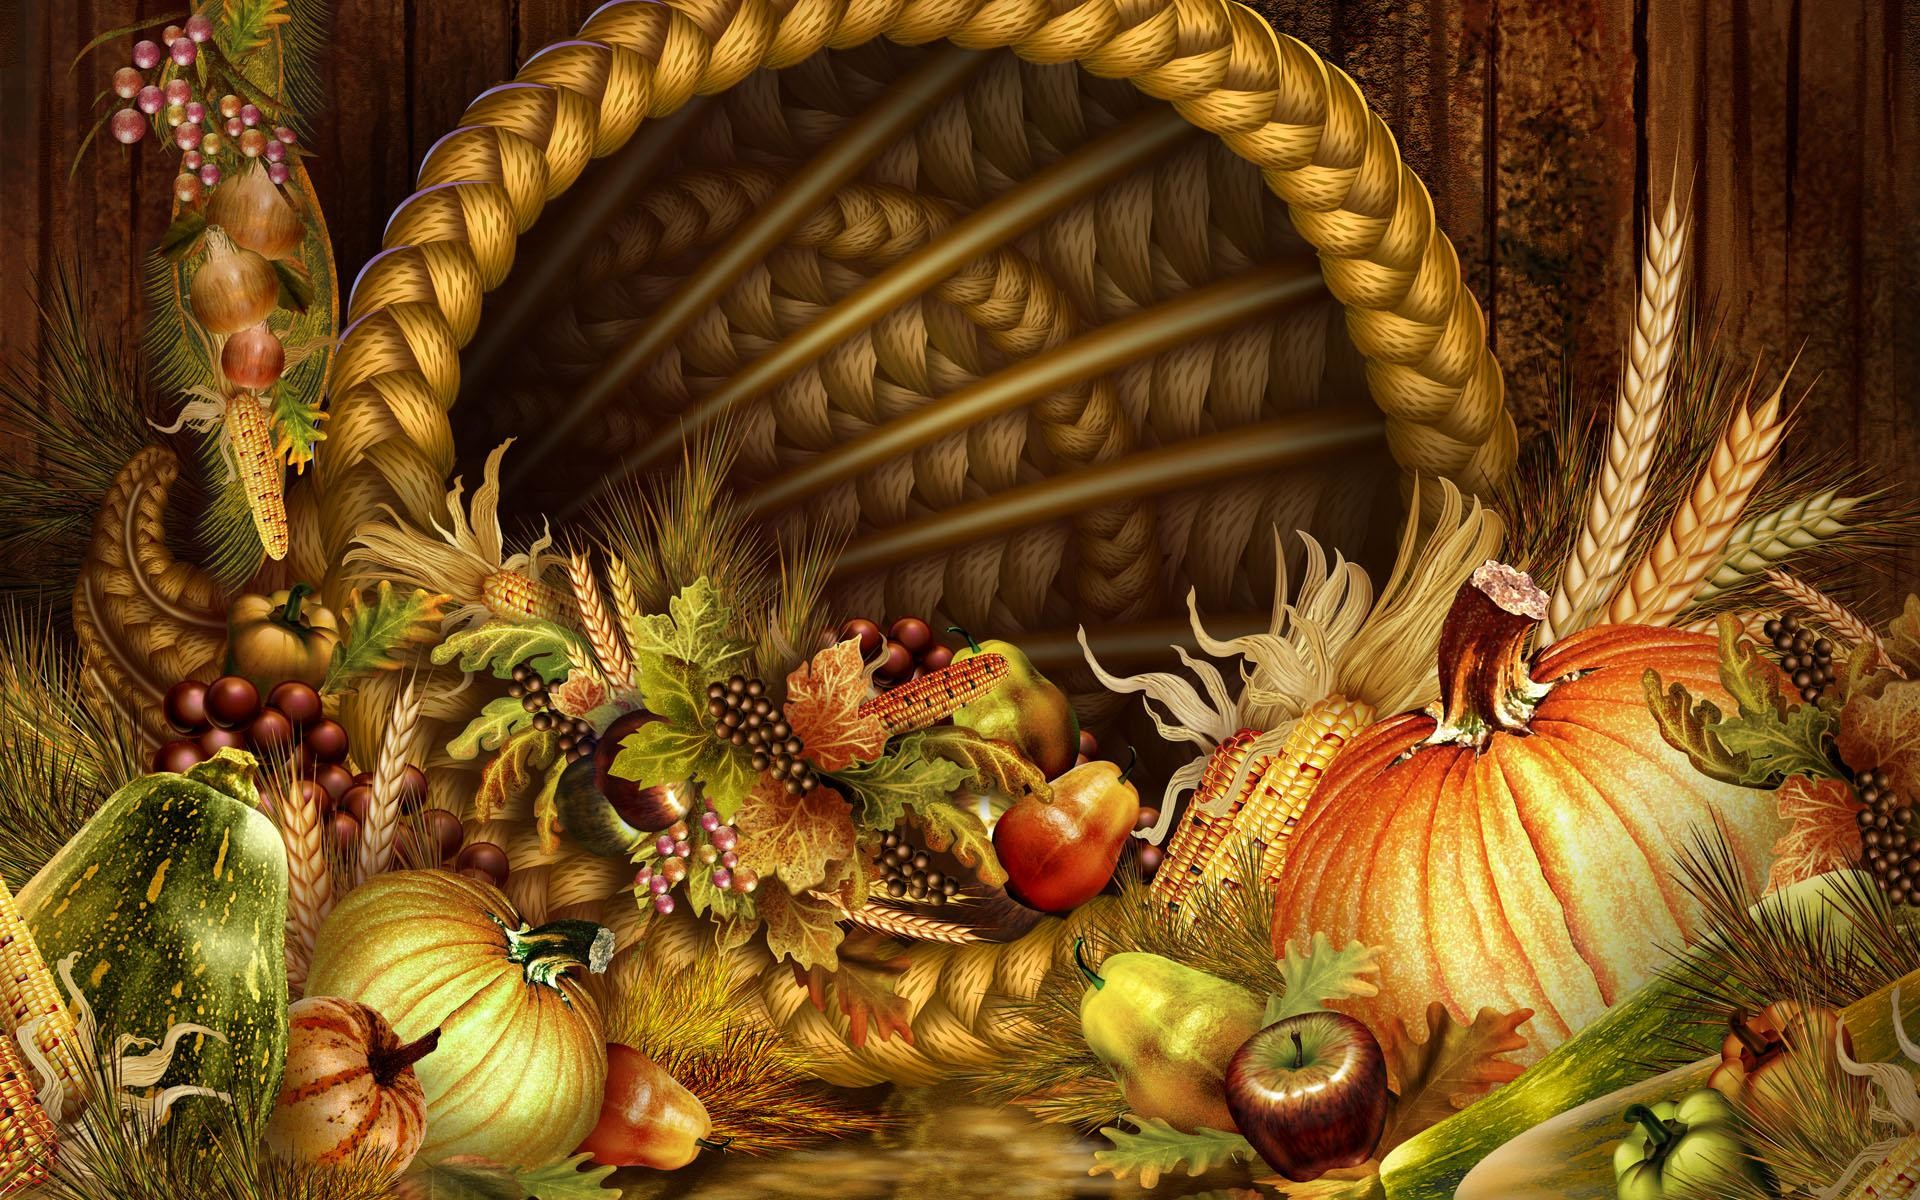 1920x1200 happy thanksgiving desktop background hd wallpapers download tablet background  wallpapers smart phones pictures samsung phone wallpapers 1080p 1920×1200  ...